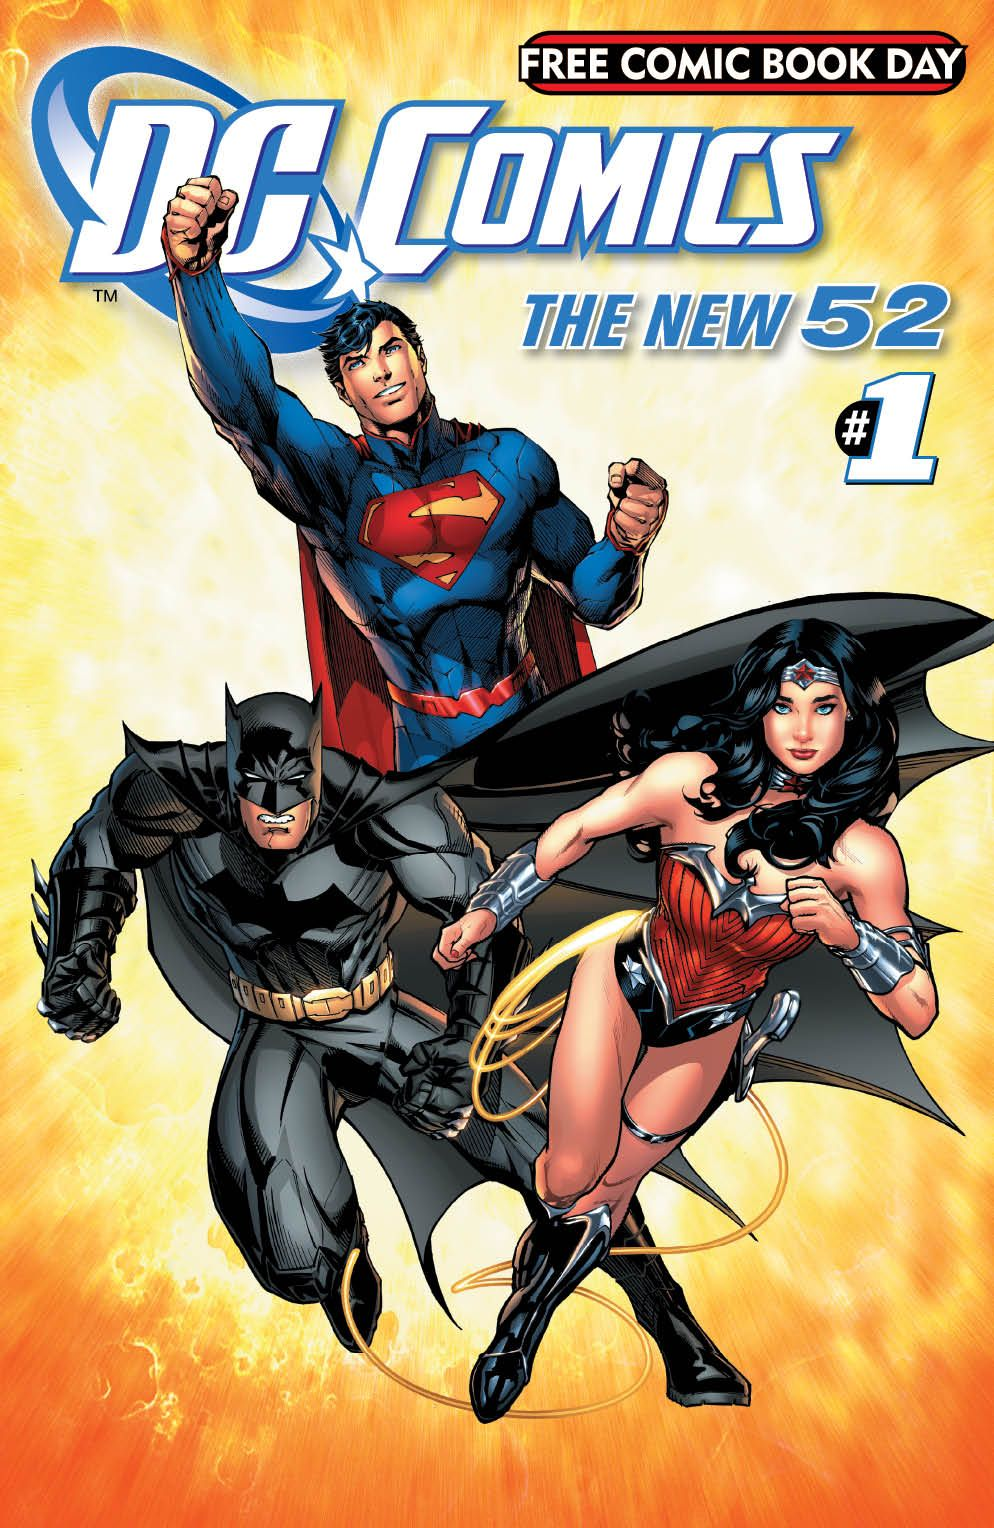 The Cover For DC Comics Free Comic Book